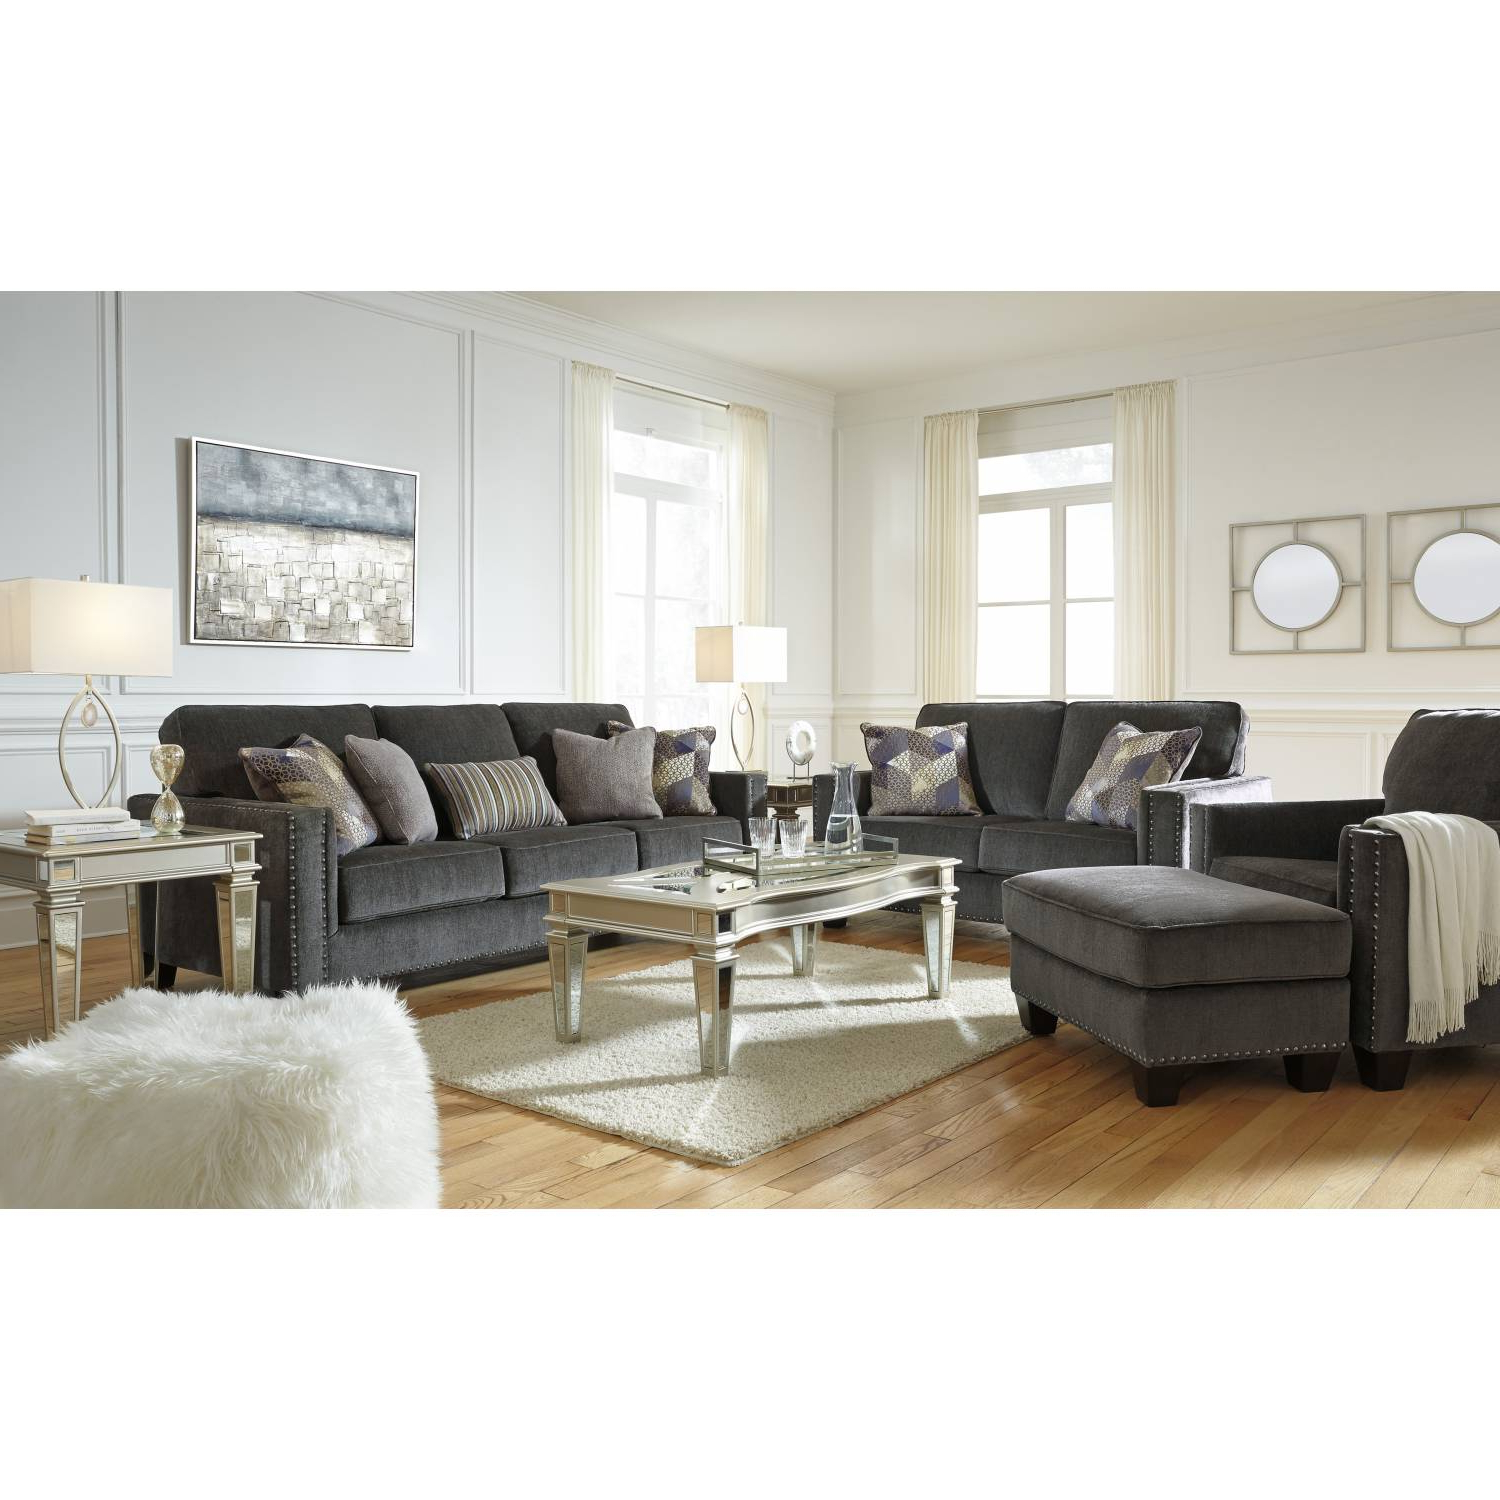 4Pc Beckett Contemporary Sectional Sofas And Ottoman Sets Regarding 2018 43001 Gavril 4Pc Sets Sofa + Loveseat + Chair + Ottoman (View 19 of 25)